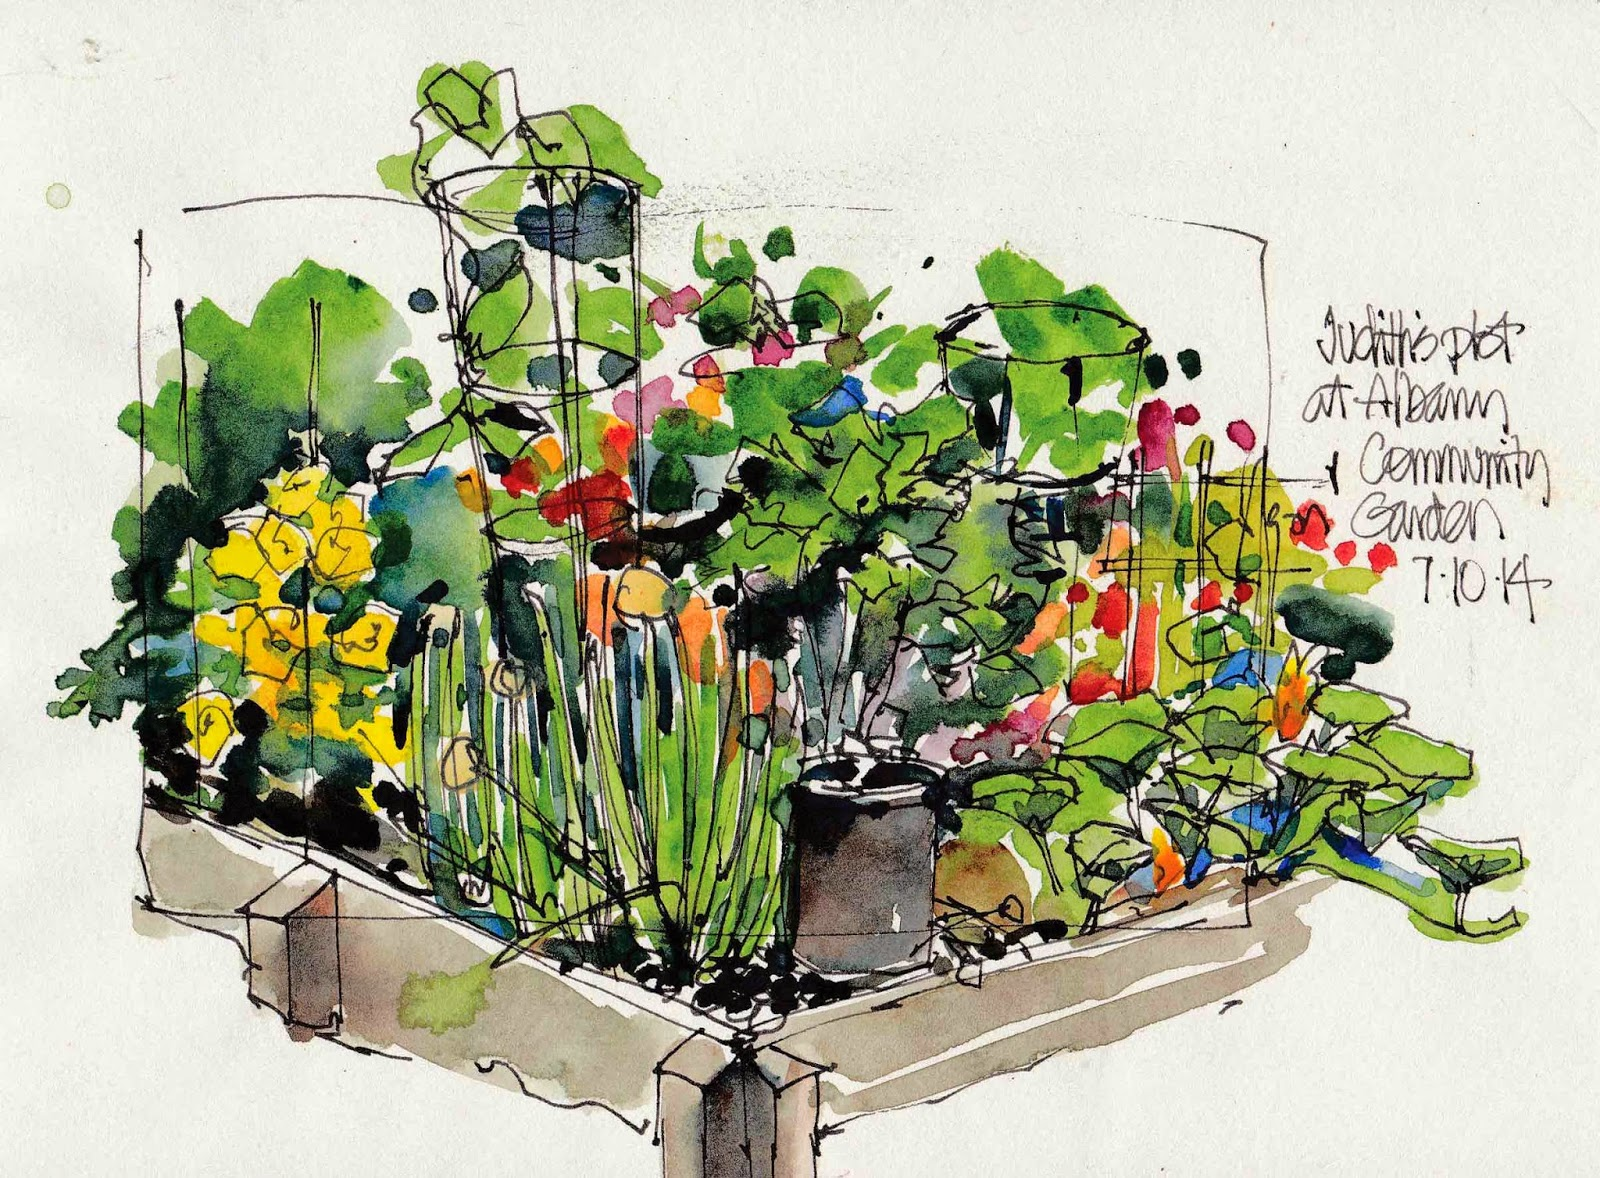 Community garden sketch sketches and more Pinterest Sketches